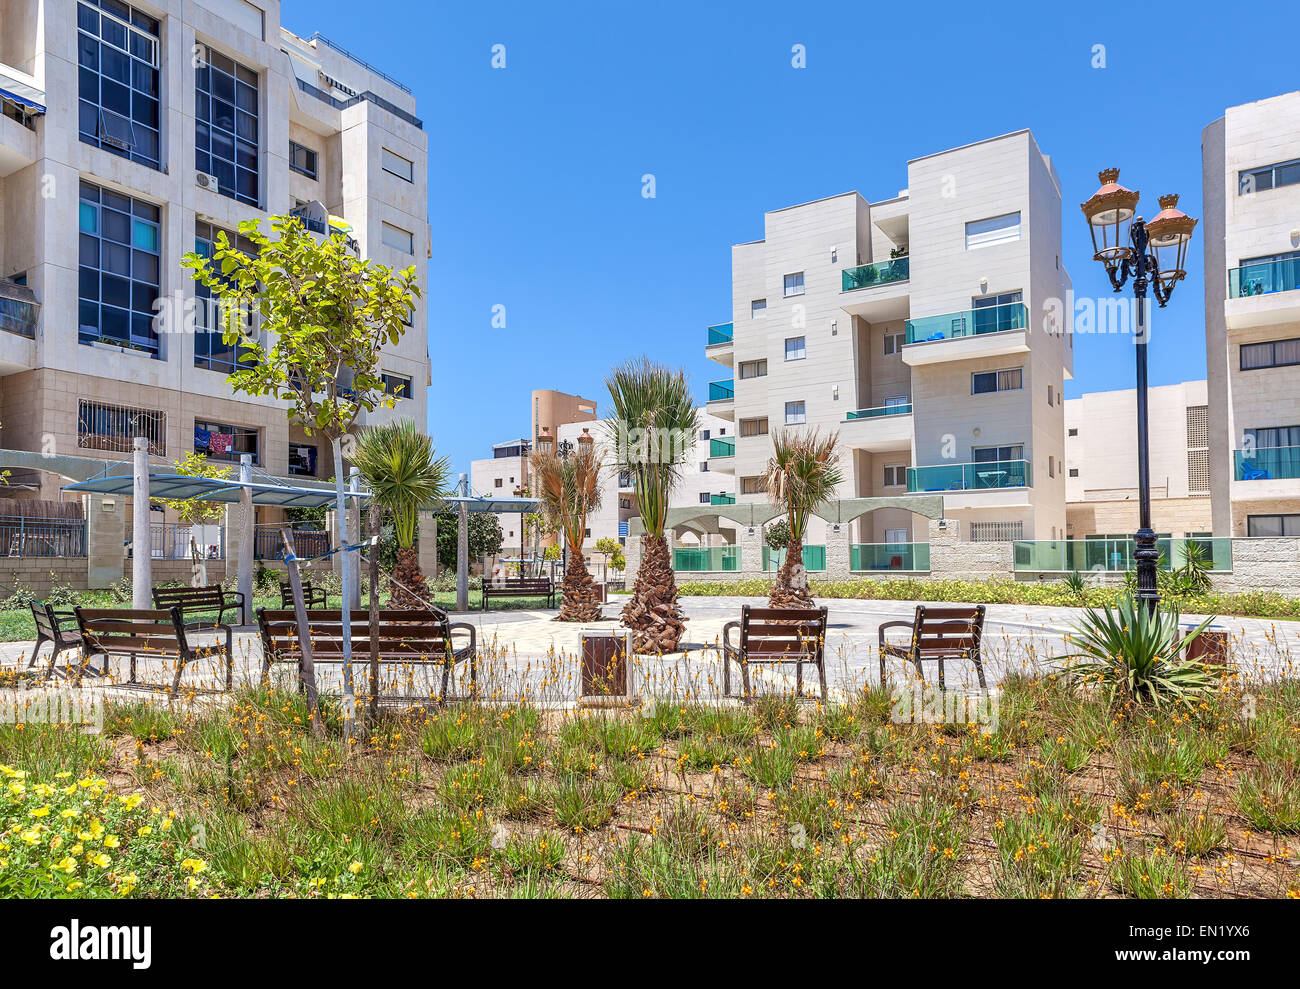 Small city square with palms and benches near complex of contemporary residential buildings in Ashqelon, Israel. - Stock Image